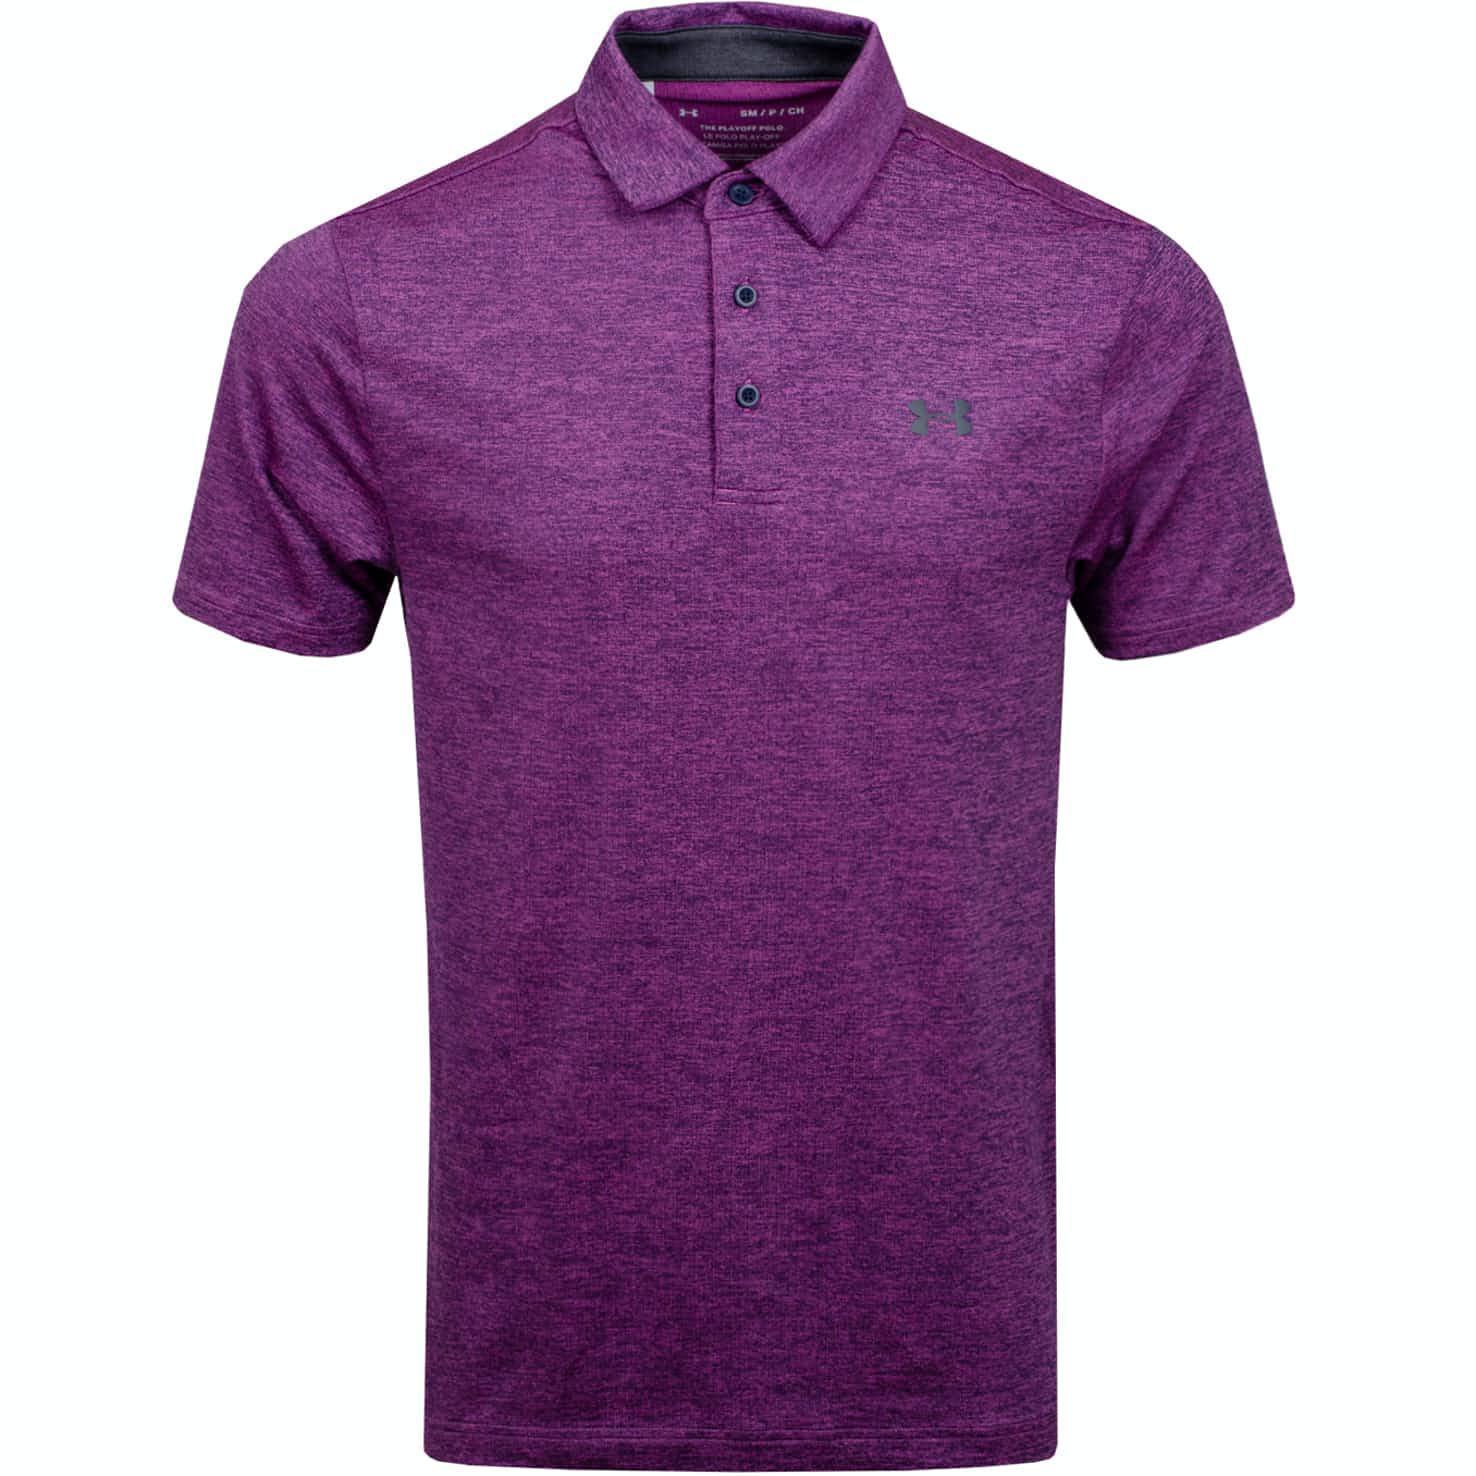 Playoff Polo 2.0 Optic Purple/Pitch Grey - AW19